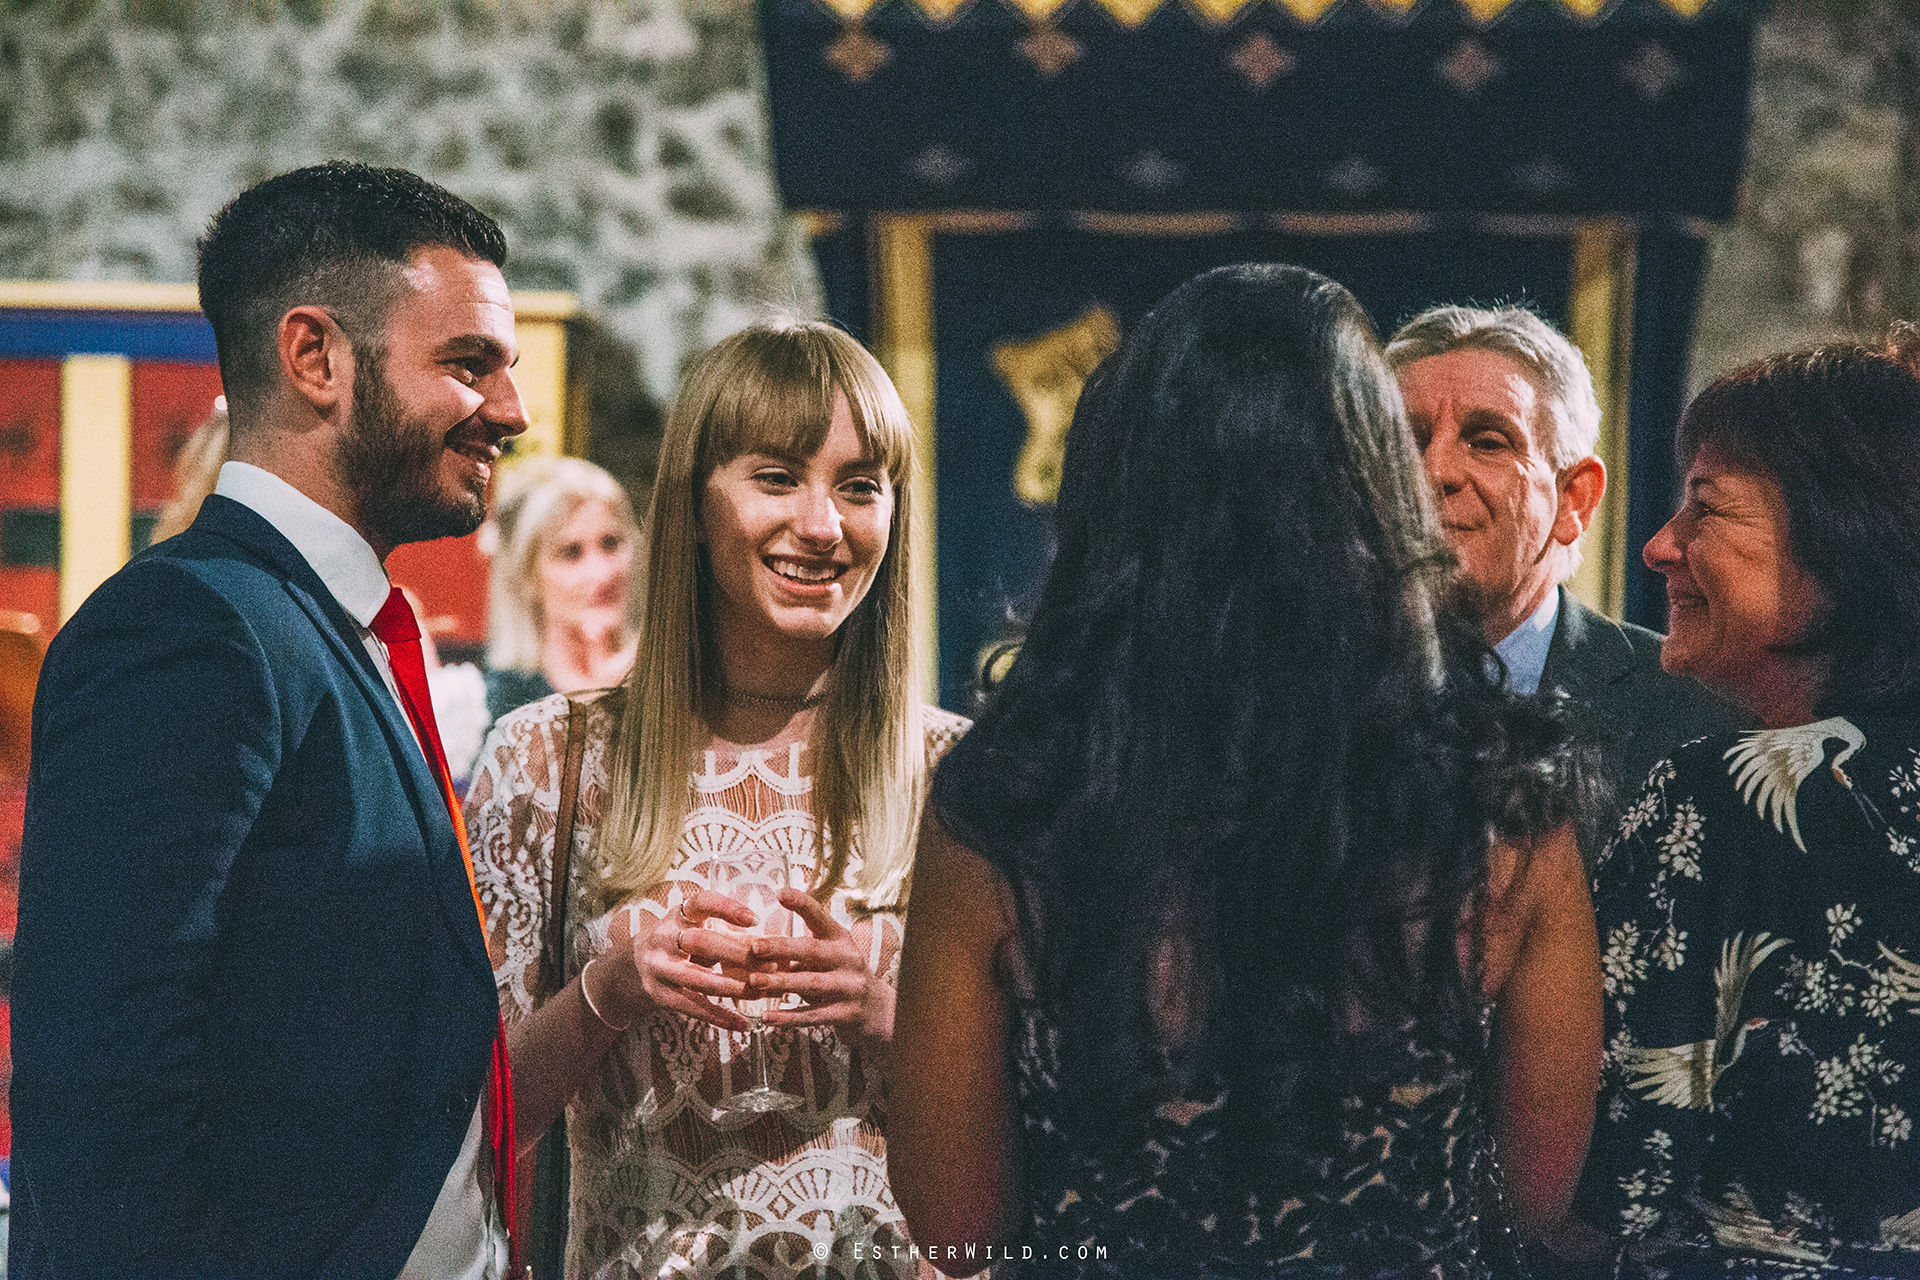 wedding_norwich_castle_norfolk_esther_wild_photographer_norfolk_brides (75).jpg